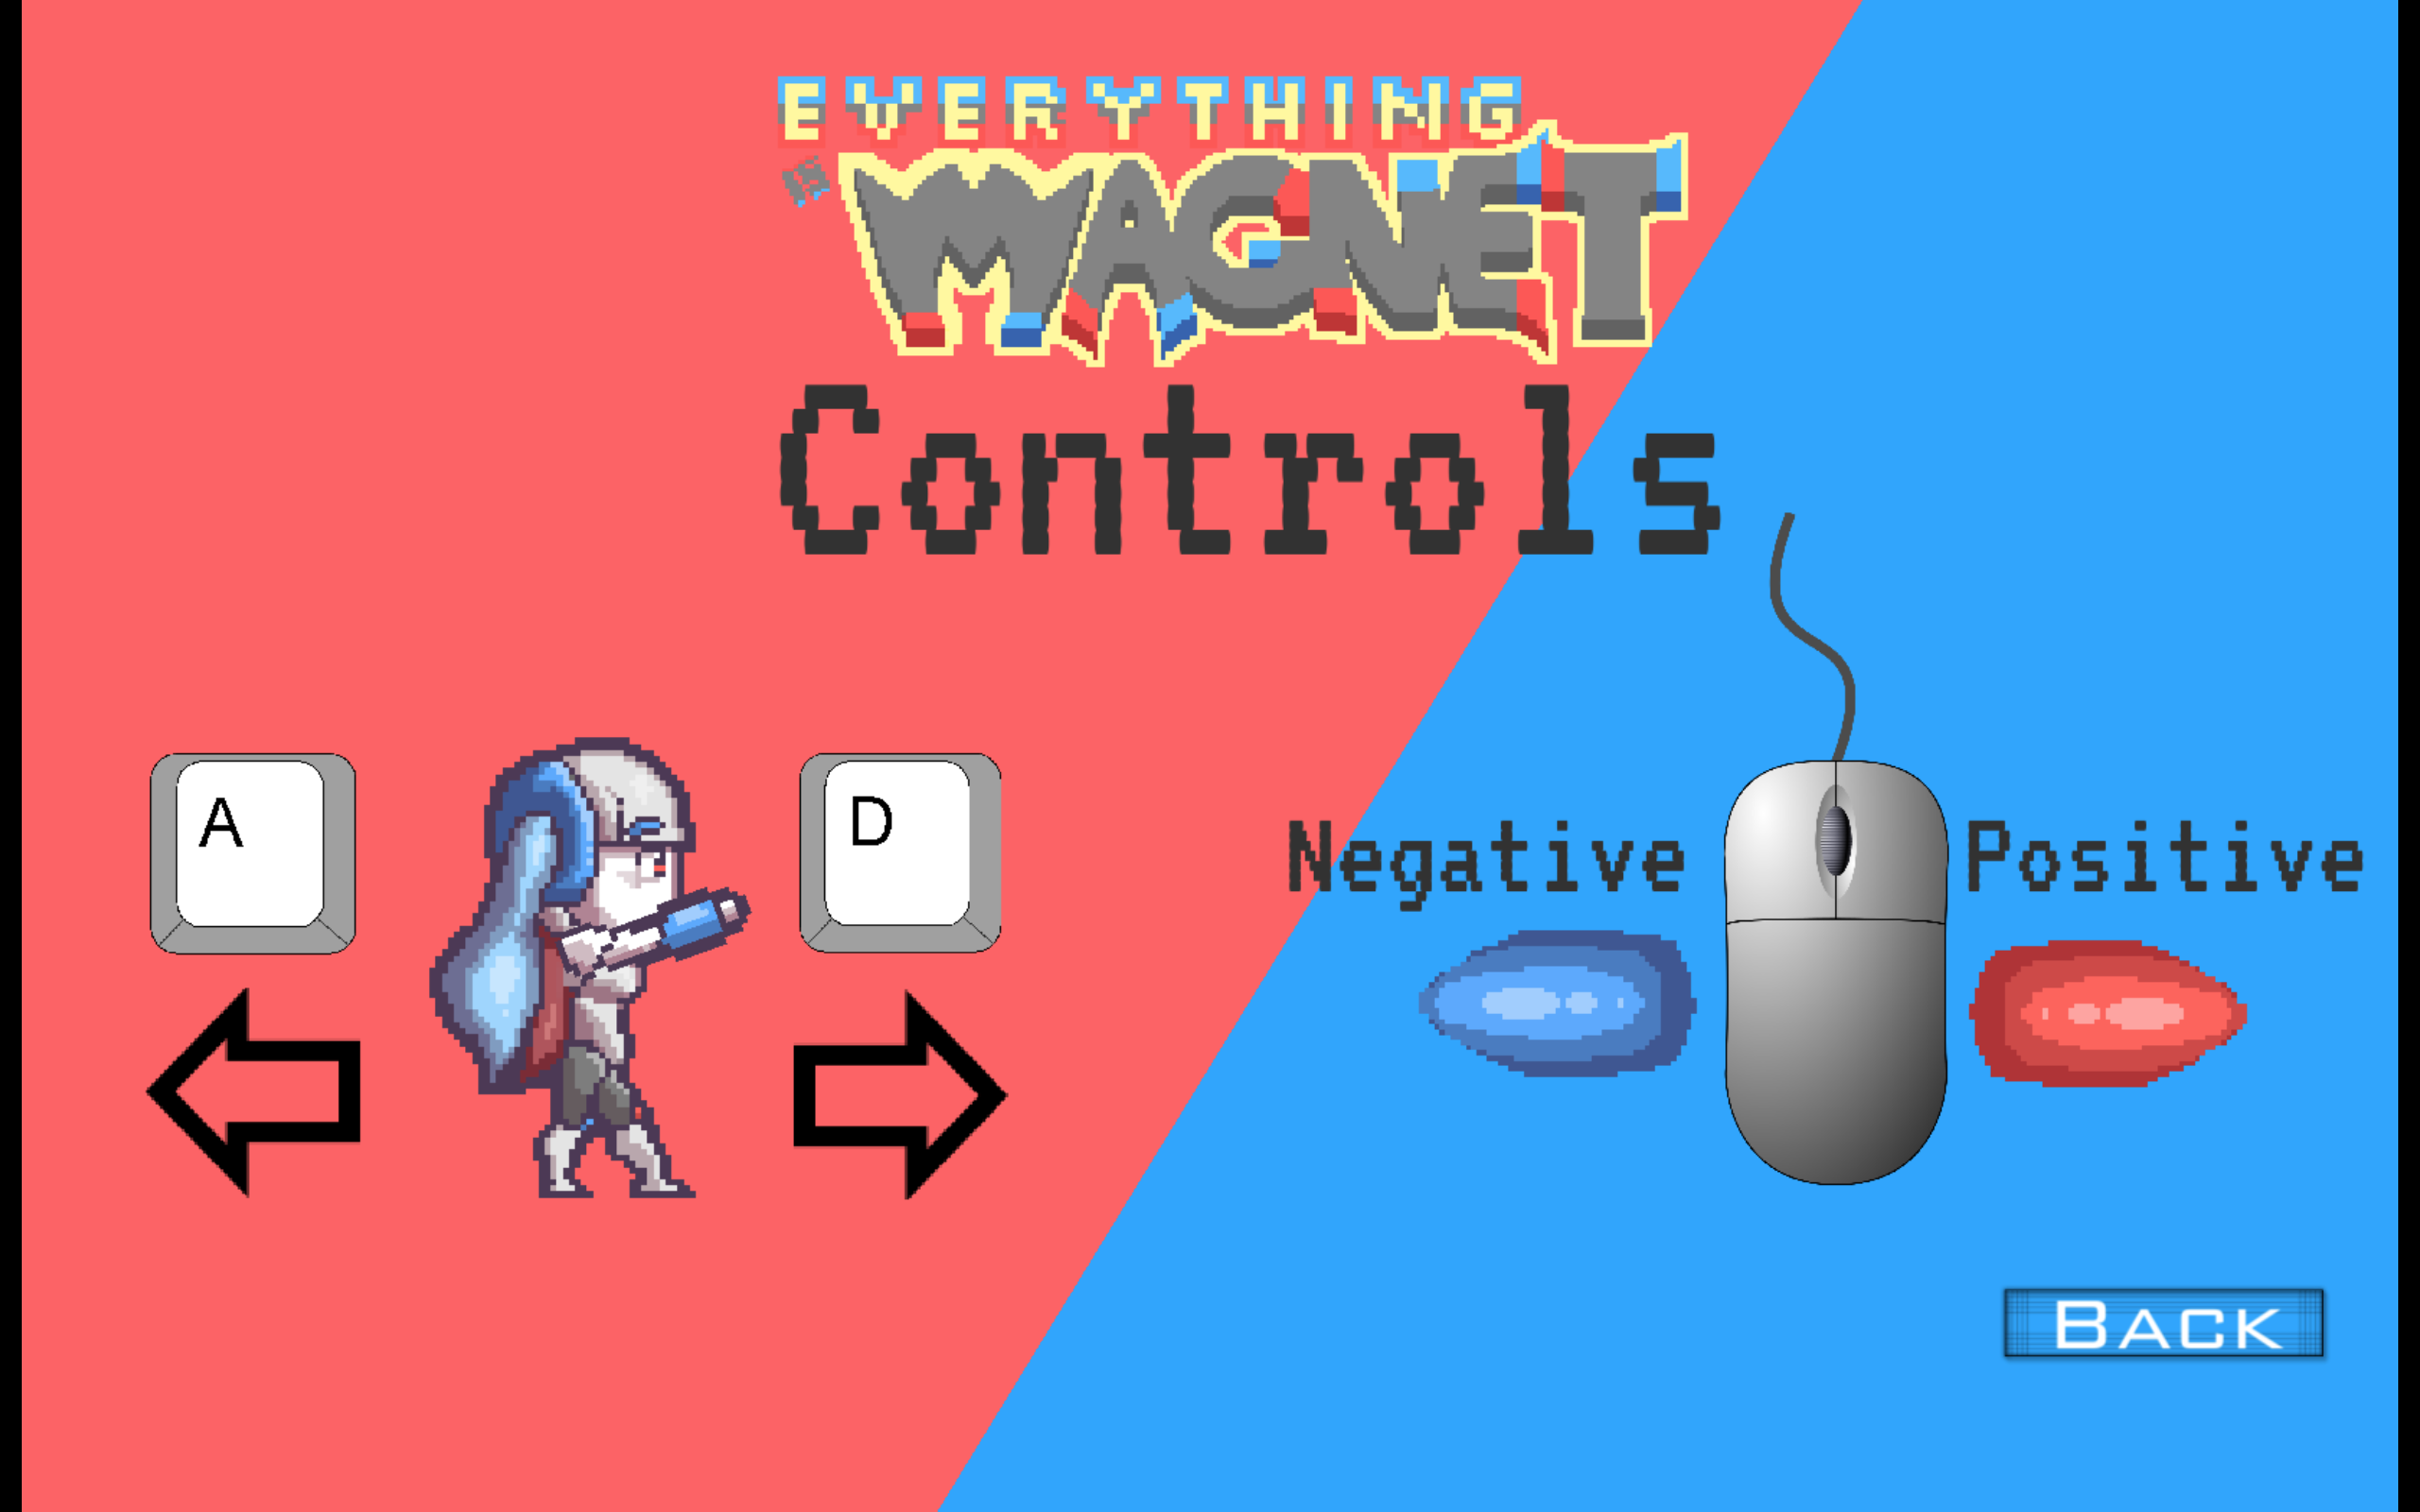 EverythingIsMagnet9